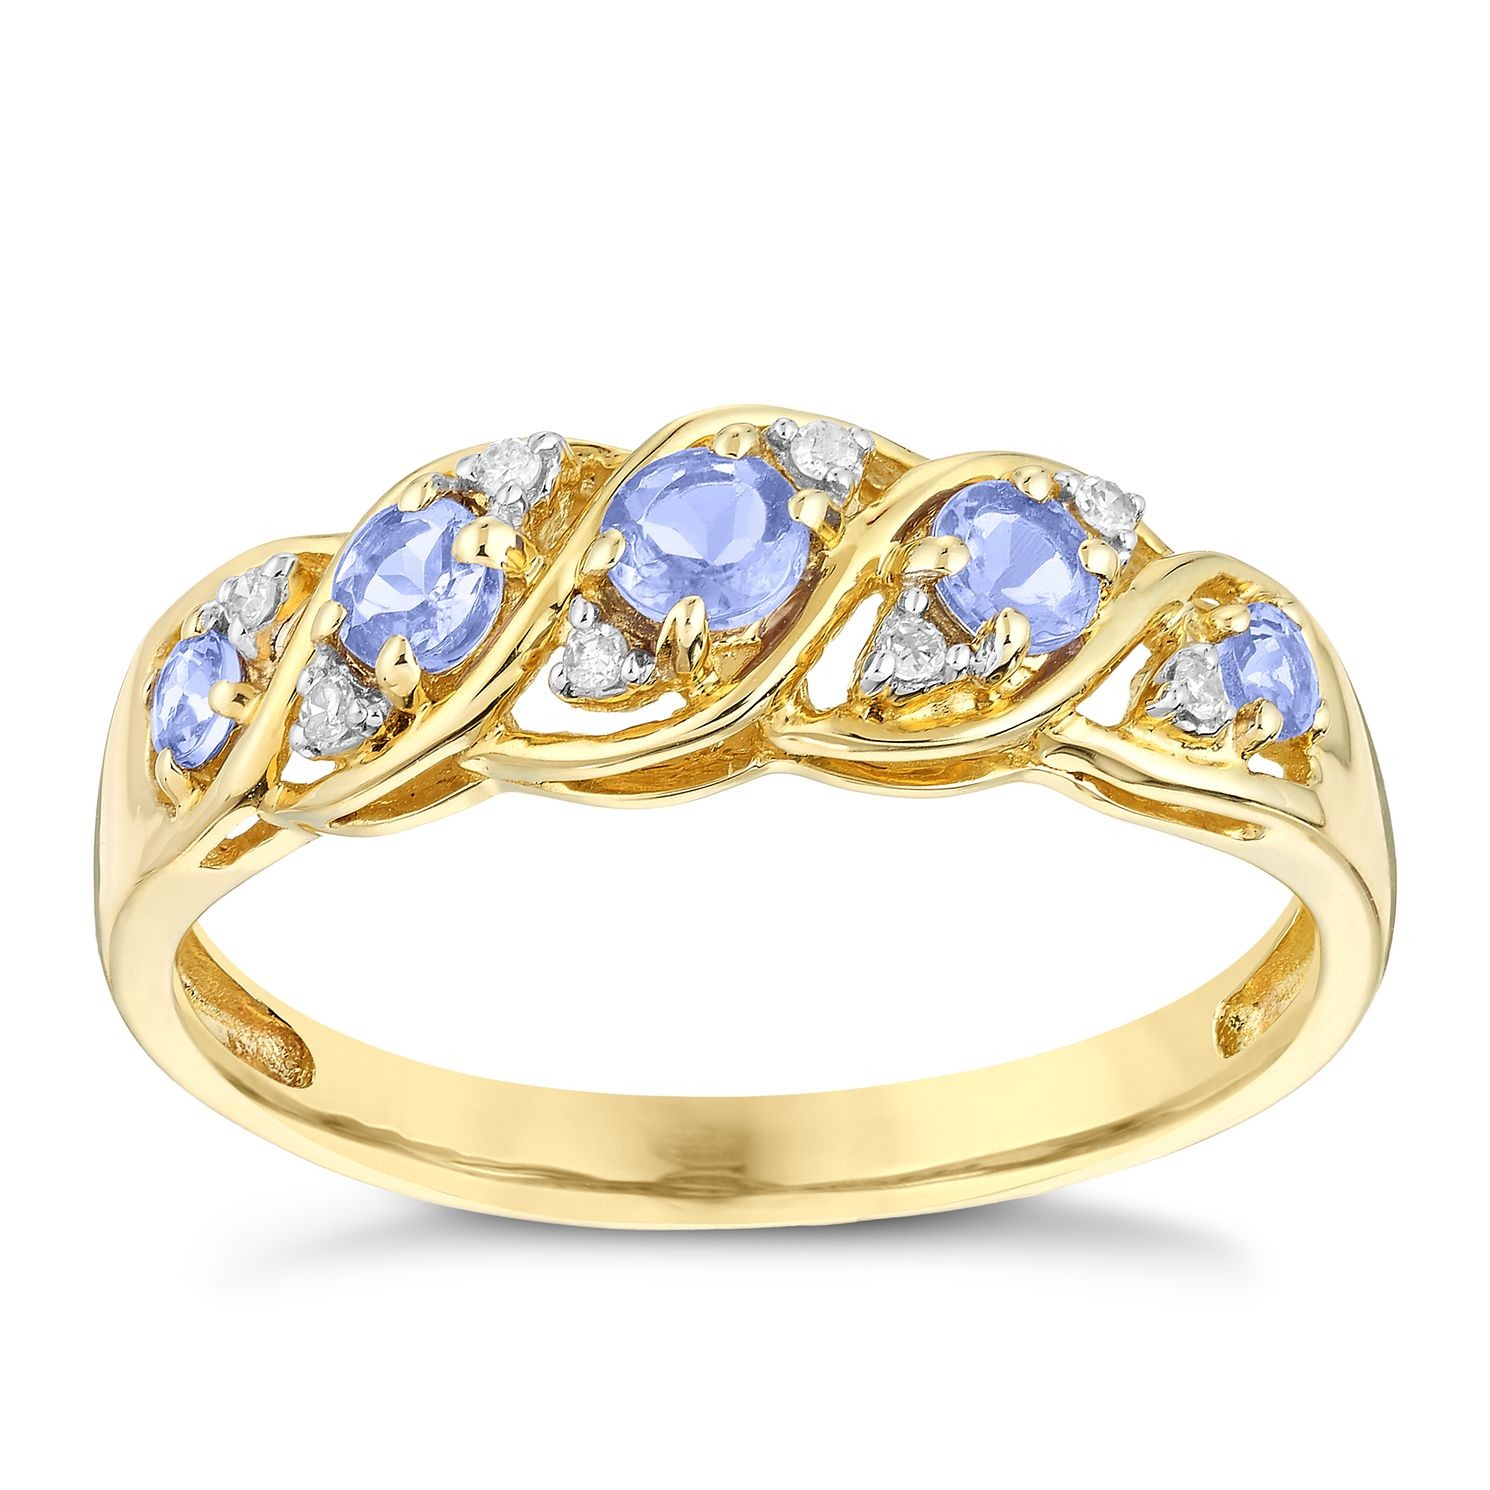 us this gemstone exquisite real of explore know blue rare beauty with gem years tanzanite